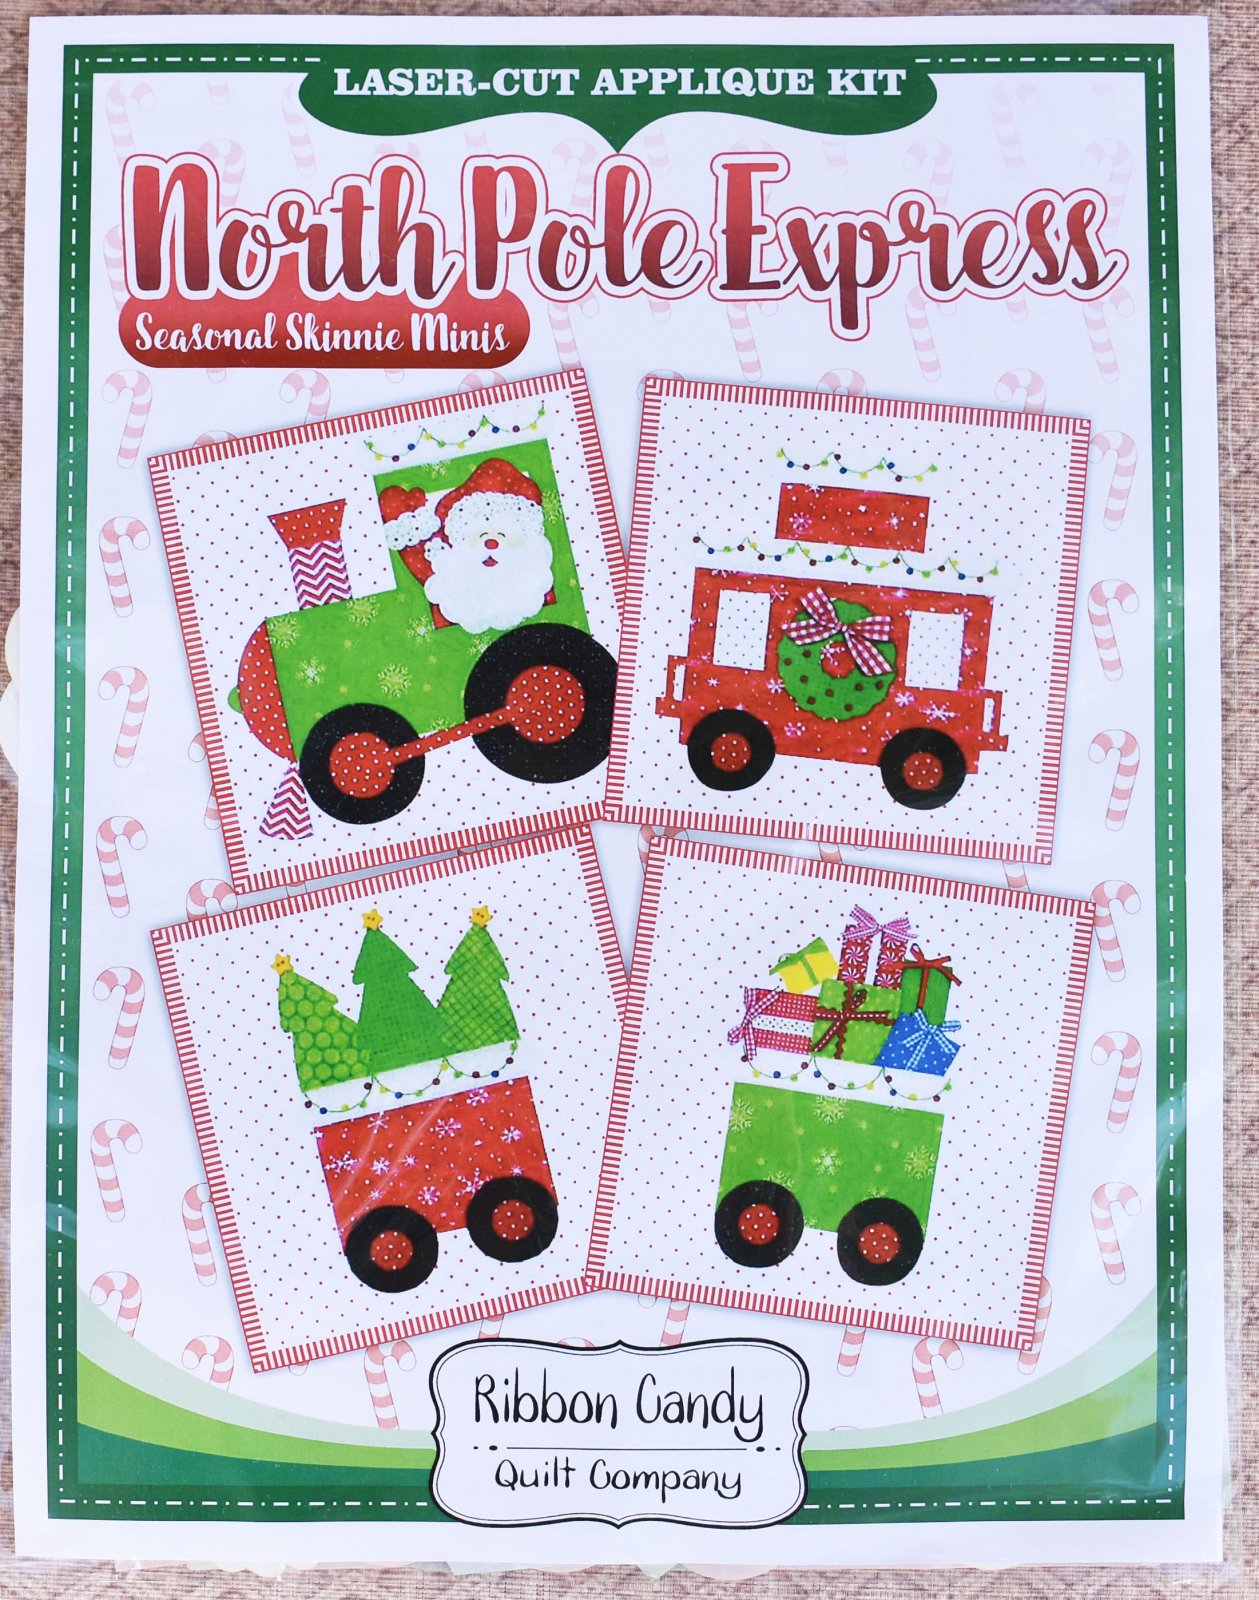 North Pole Express - Laser Cut Kits